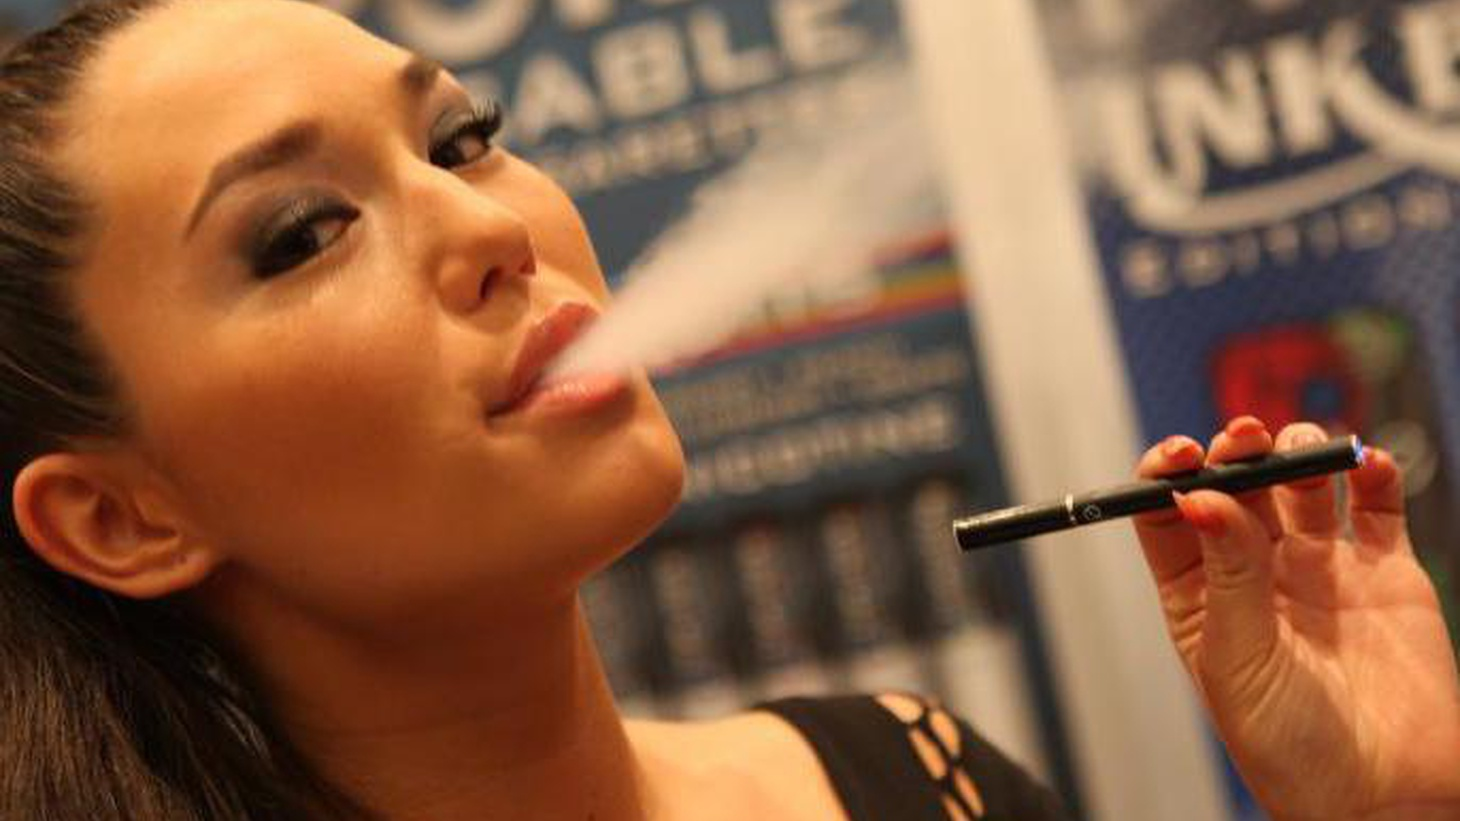 E-cigarettes supply nicotine without carcinogens. Are they a great way to stop smoking